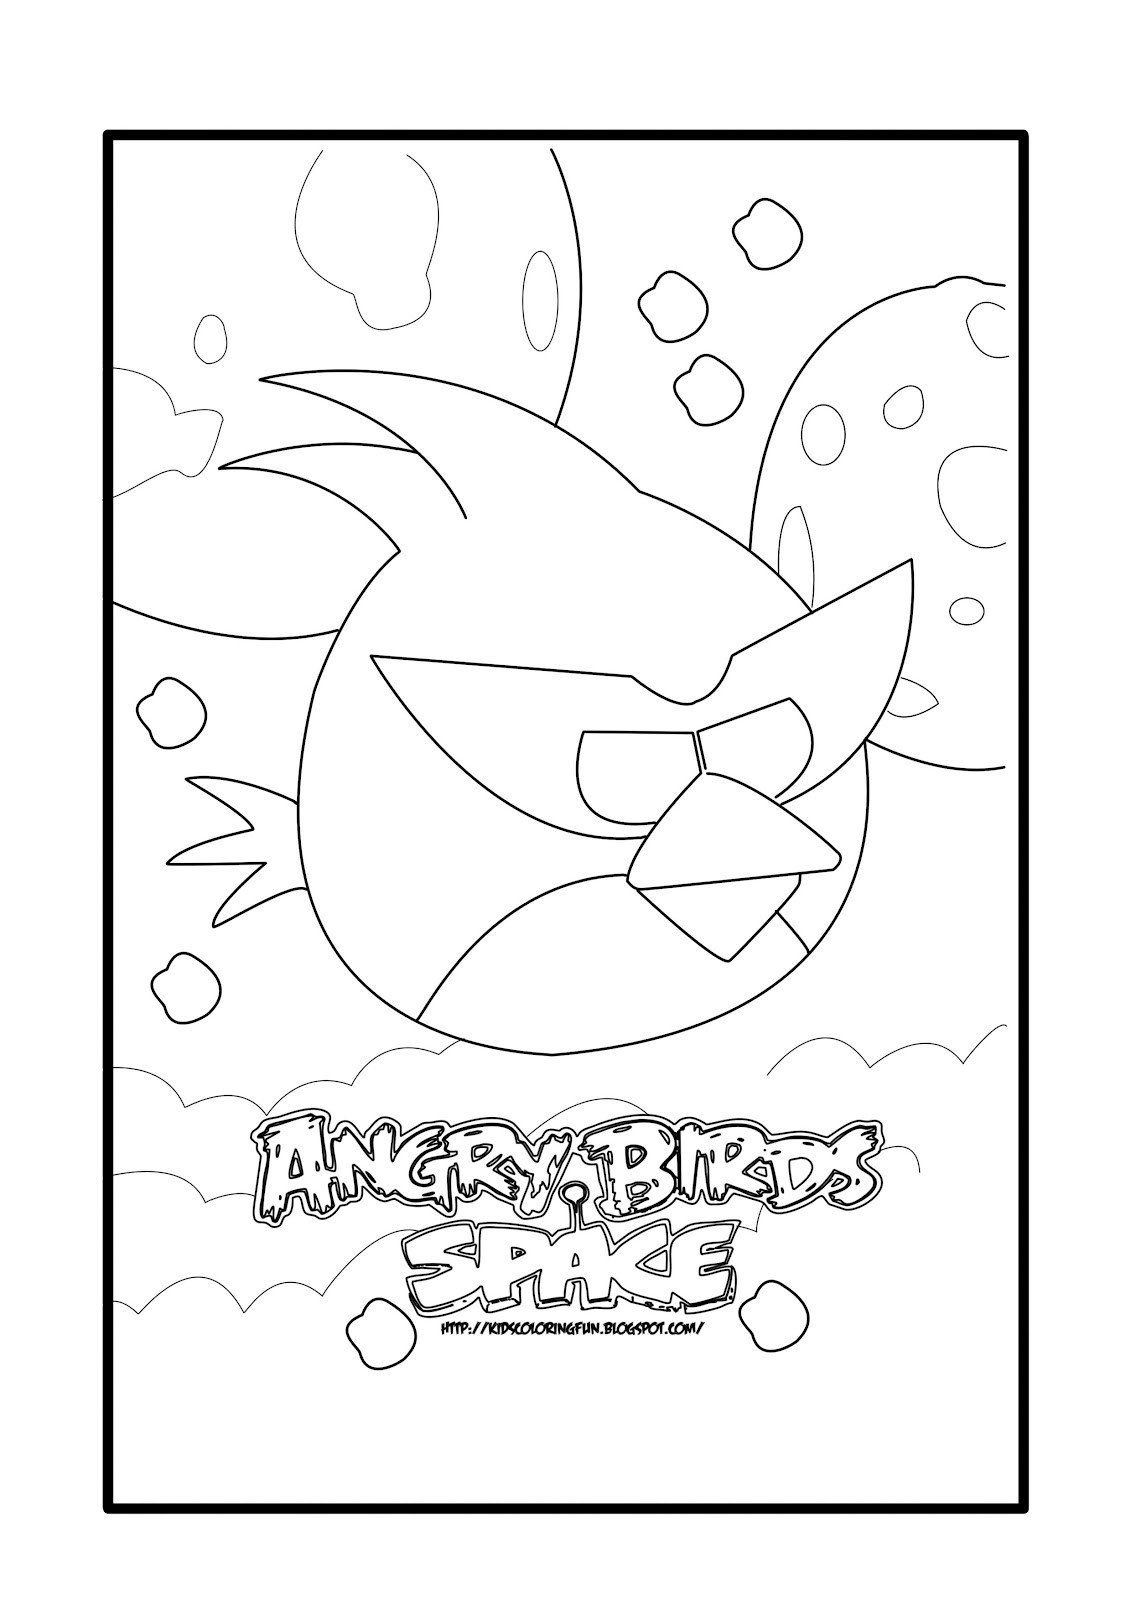 Angry Birds Go Coloring Page Angry Birds Free Printable Coloring Pages Colorpages Coloring Pages Bird Coloring Pages Owl Coloring Pages